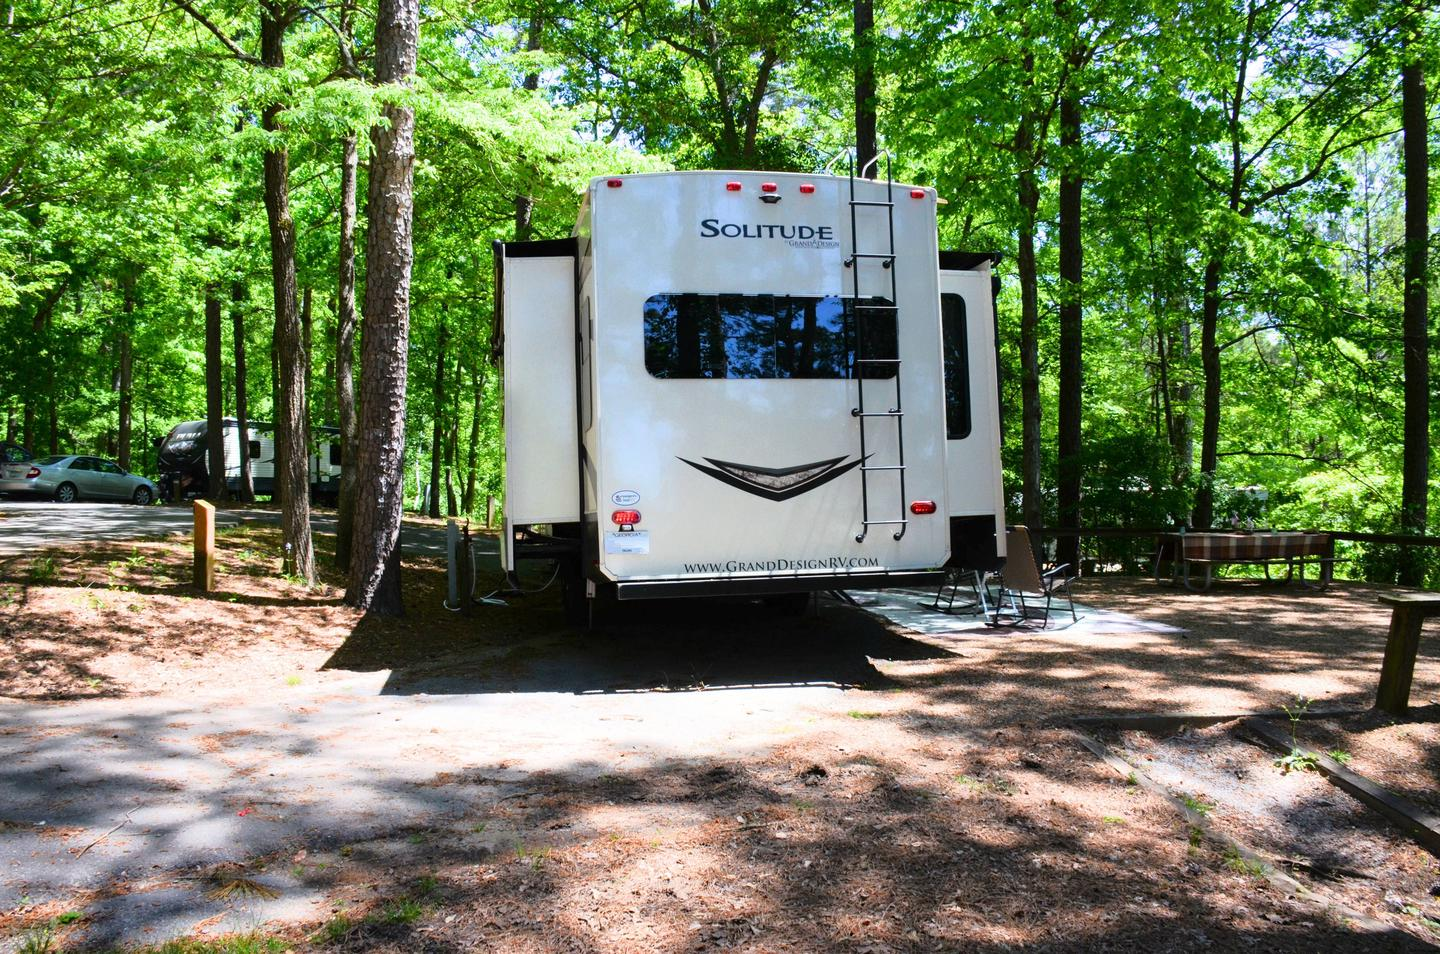 Pull-thru entrance, utilities-side clearance.McKinney Campground, campsite 98.